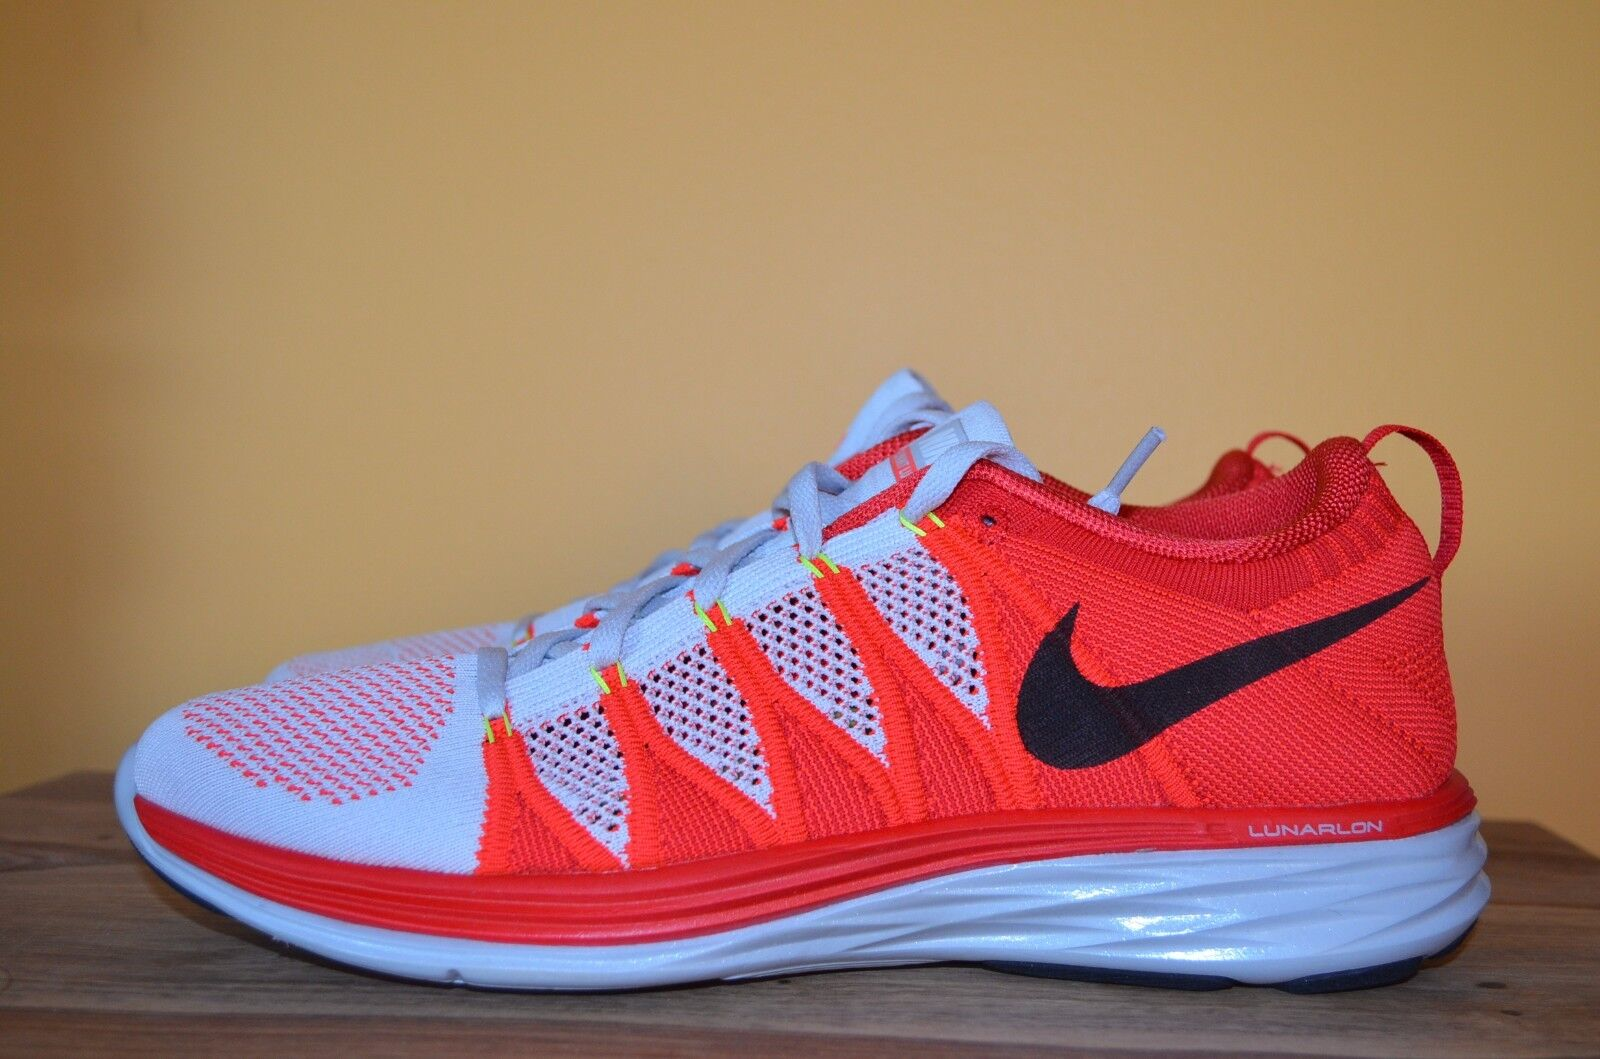 NEW NIKE FLYKNIT LUNAR 2 Running Shoes SZ 11 Platinum/Red/Black 620465-006 ii Platinum/Red/Orange